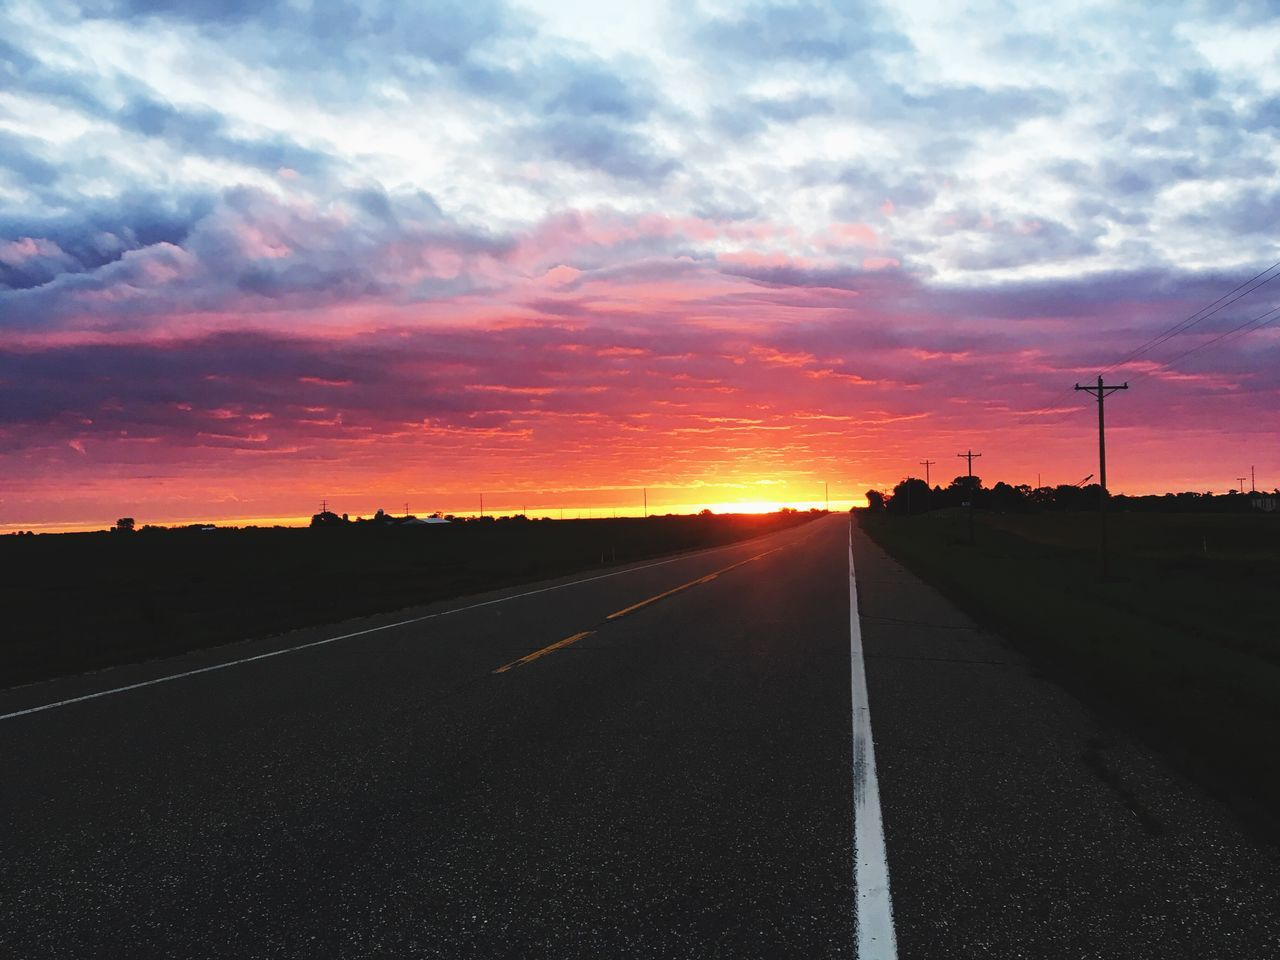 sunset, cloud - sky, road, sky, orange color, no people, the way forward, nature, transportation, outdoors, fuel and power generation, beauty in nature, scenics, silhouette, landscape, day, windmill